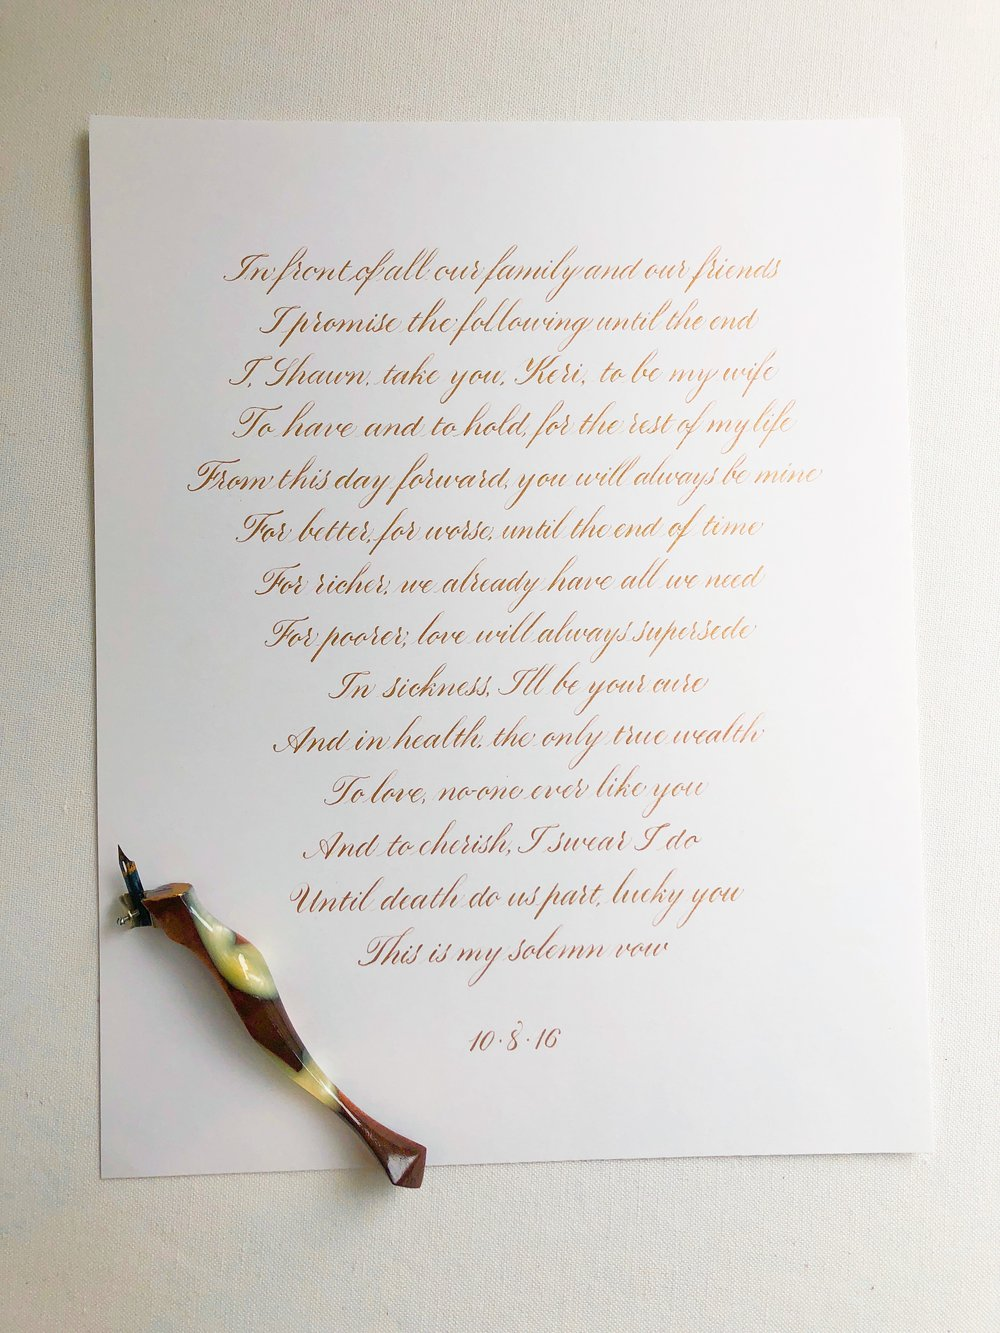 Wedding vows in copperplate calligraphyby Chavelli // www.chavelli.com